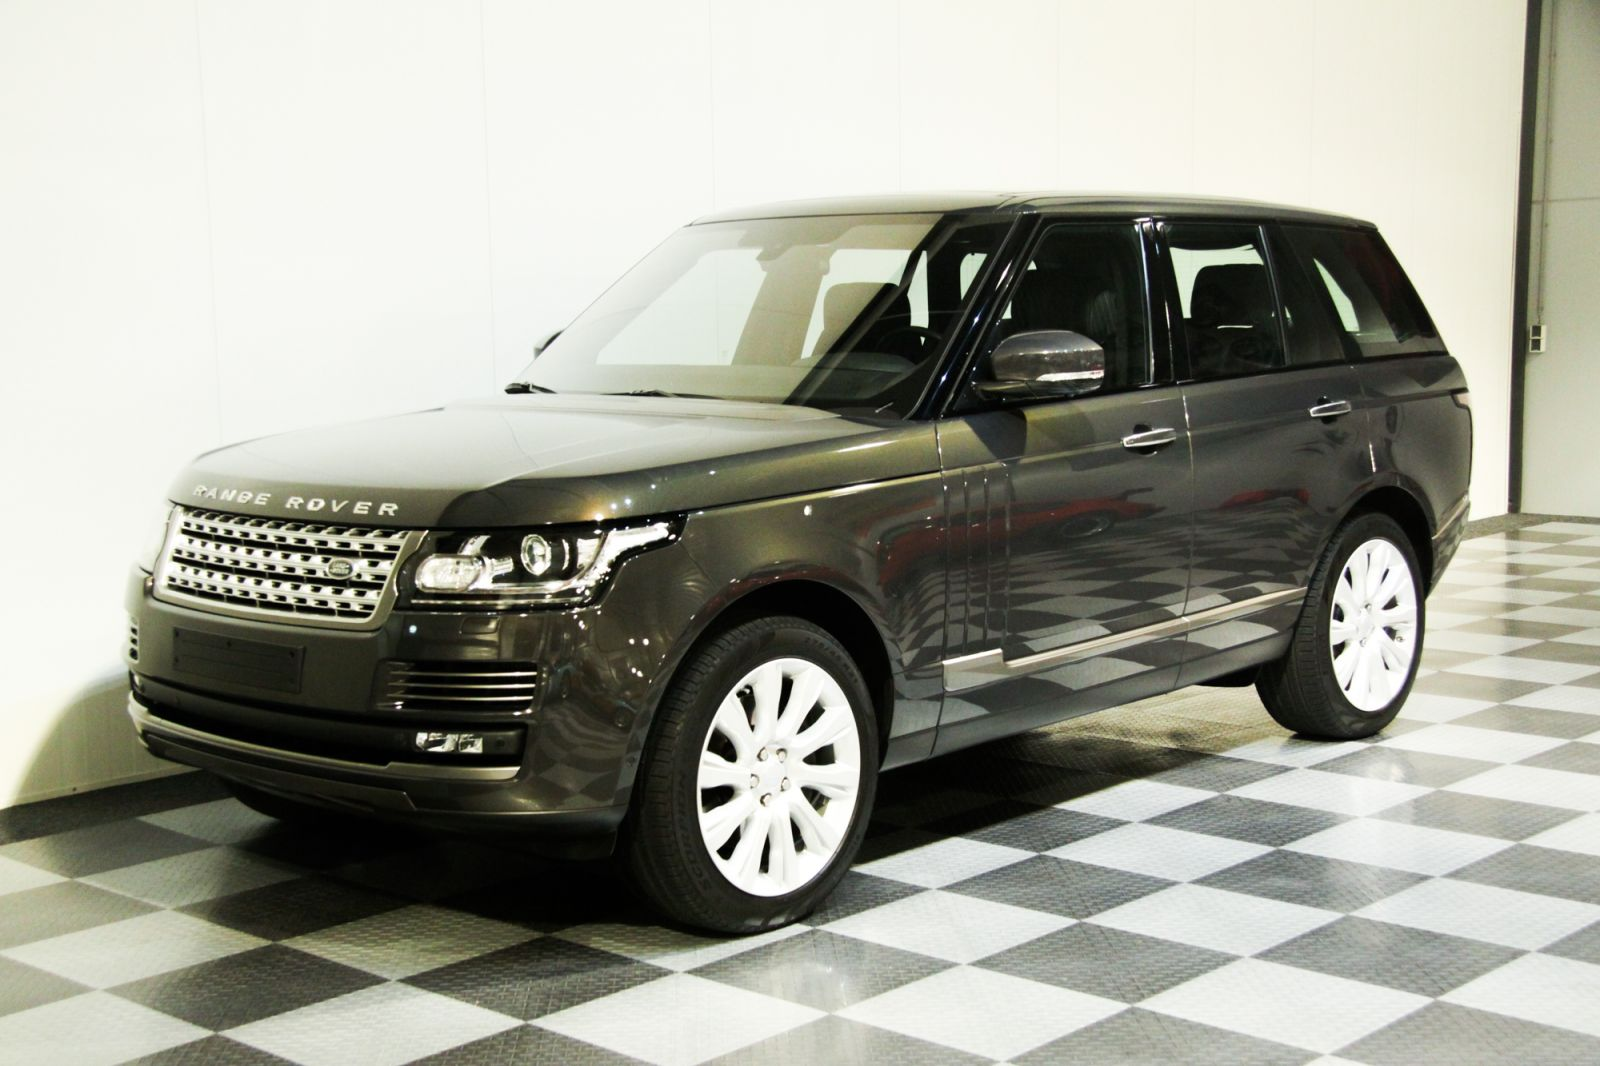 dream garage sold carsland rover range rover autobiography 4 4 sdv8. Black Bedroom Furniture Sets. Home Design Ideas